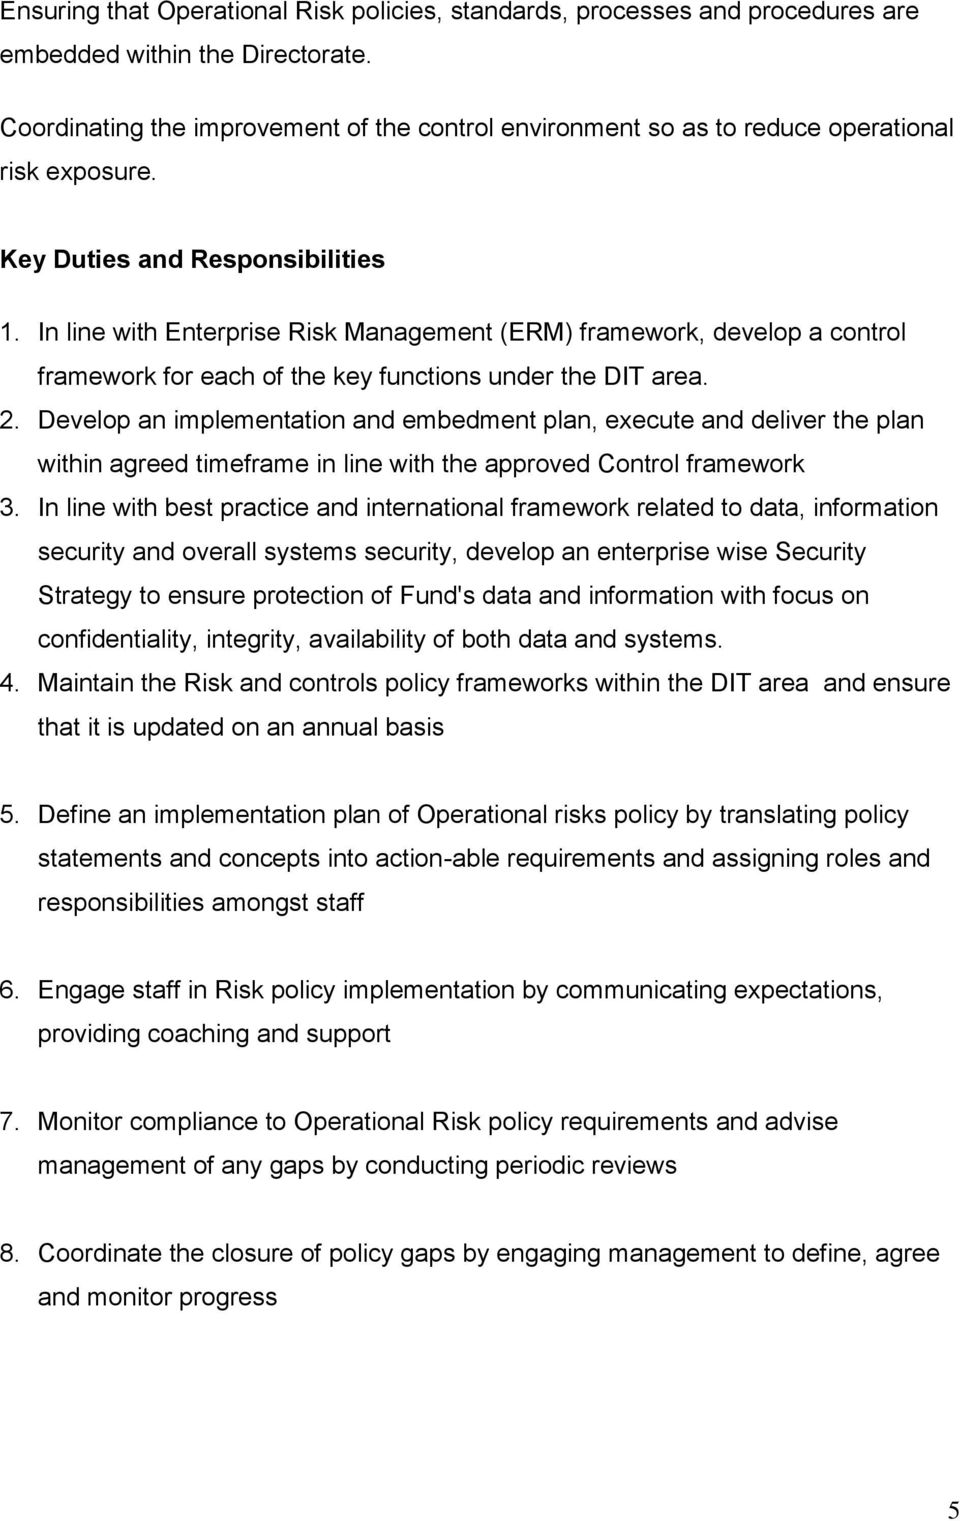 In line with Enterprise Risk Management (ERM) framework, develop a control framework for each of the key functions under the DIT area. 2.